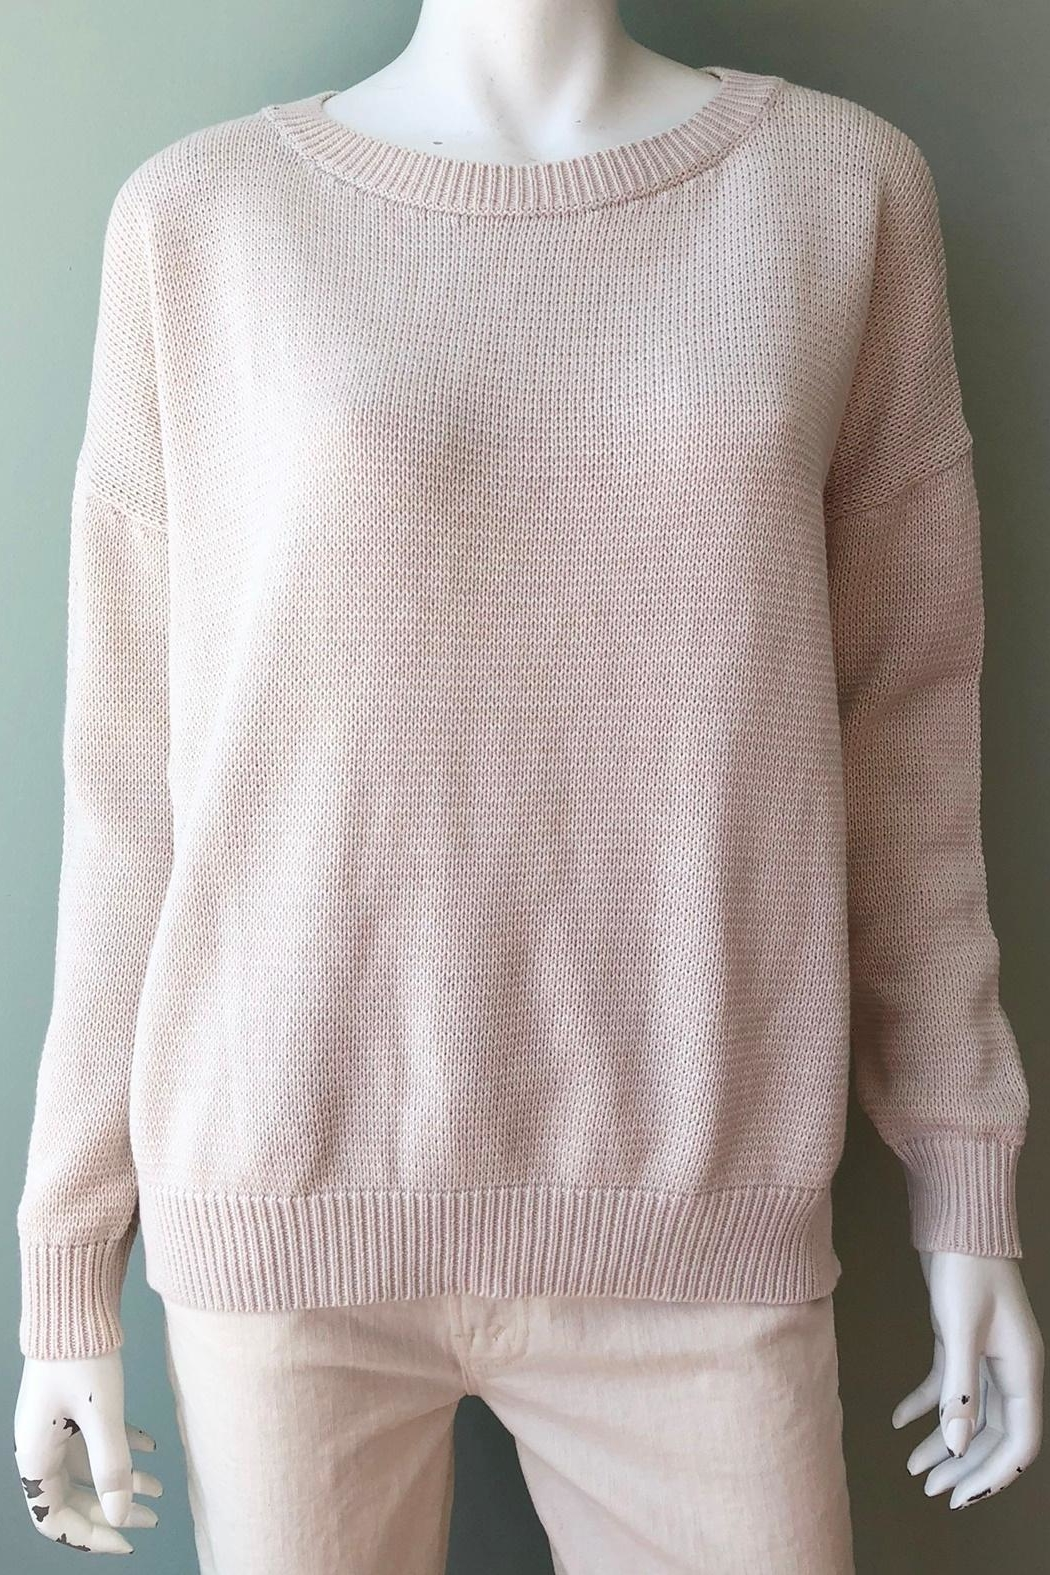 Emerson Fry Carolyn Sweater - Main Image